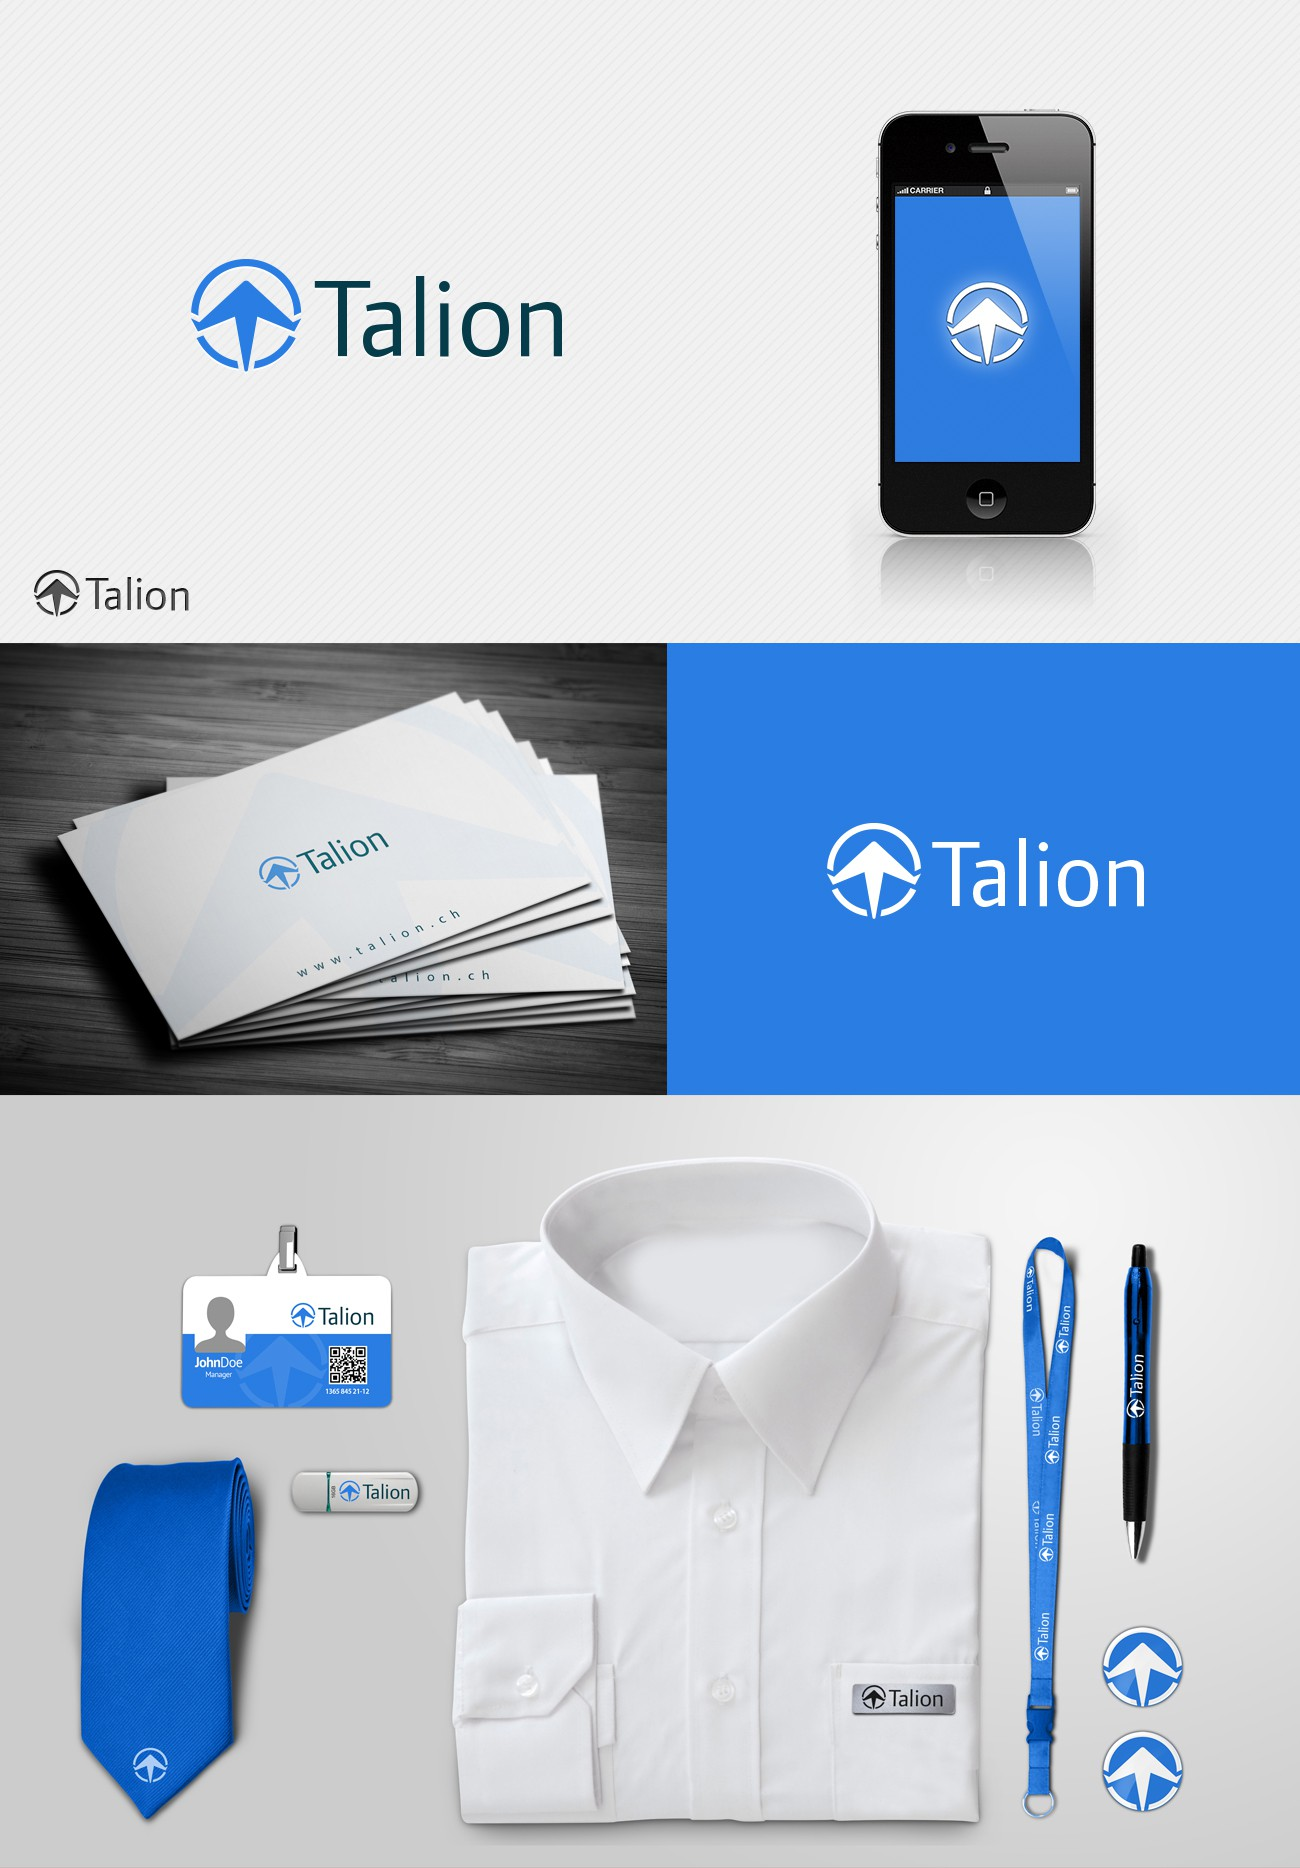 Talion GmbH - support a young company!